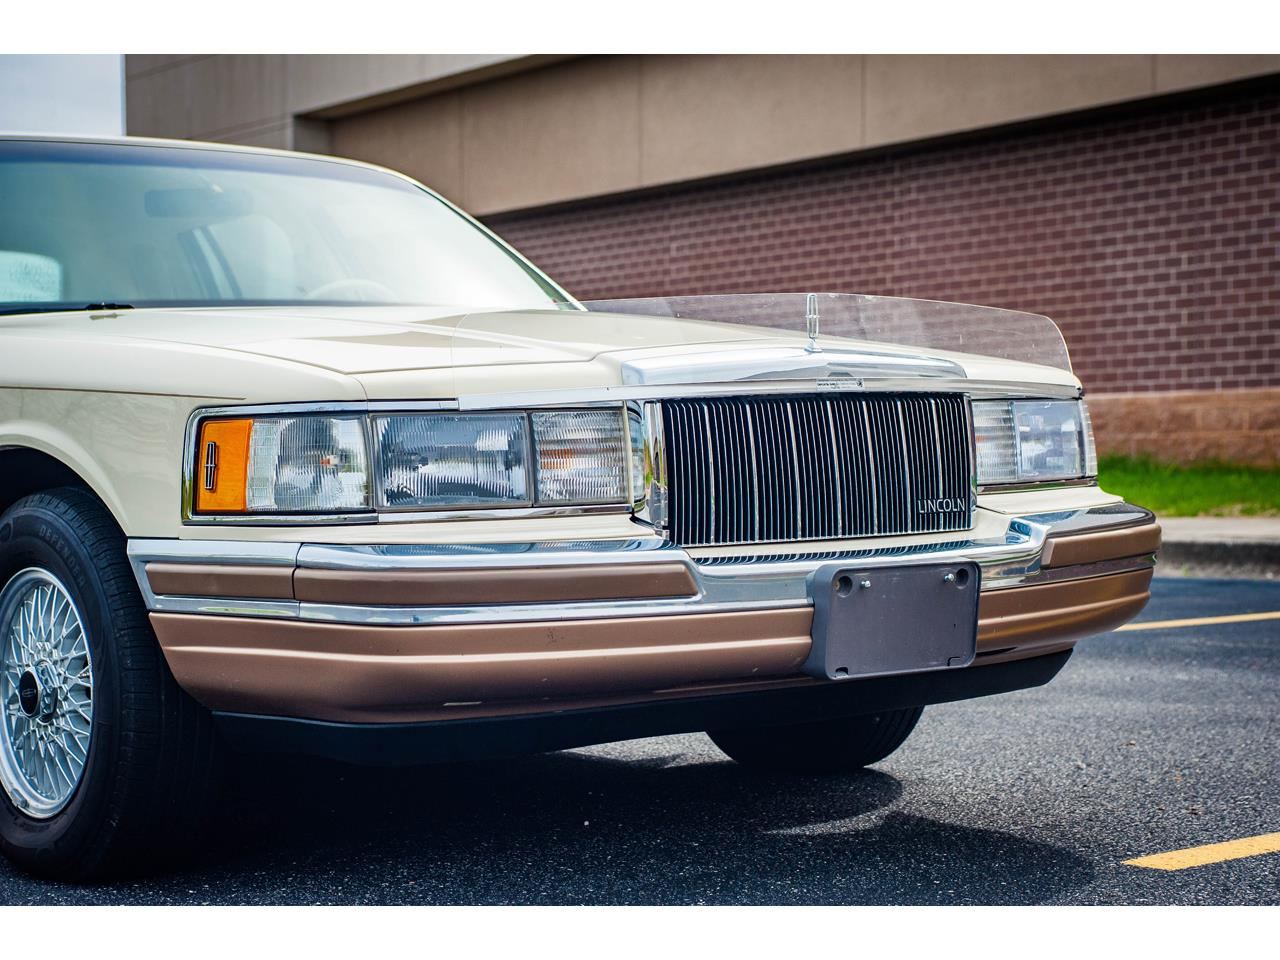 Large Picture of '90 Lincoln Town Car located in Illinois Offered by Gateway Classic Cars - St. Louis - QB8G